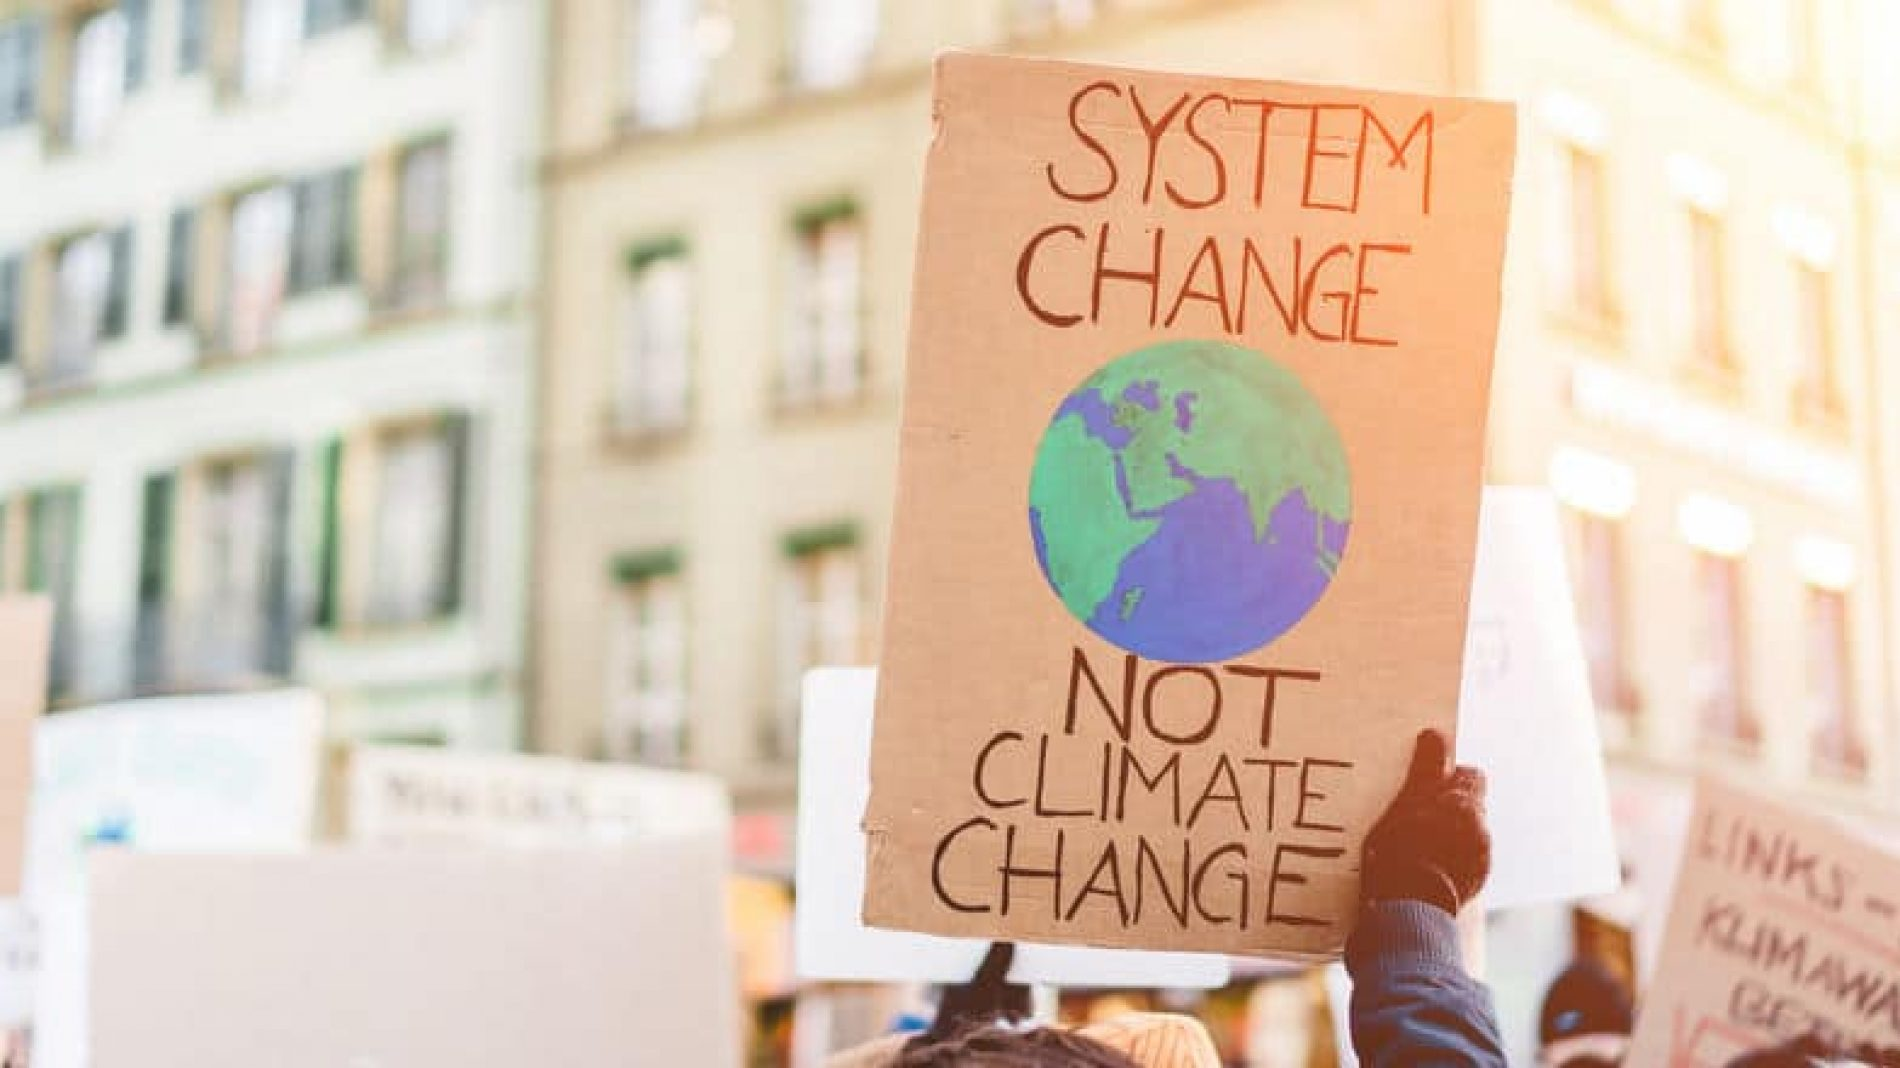 Irish students to take part in global school strikes for climate